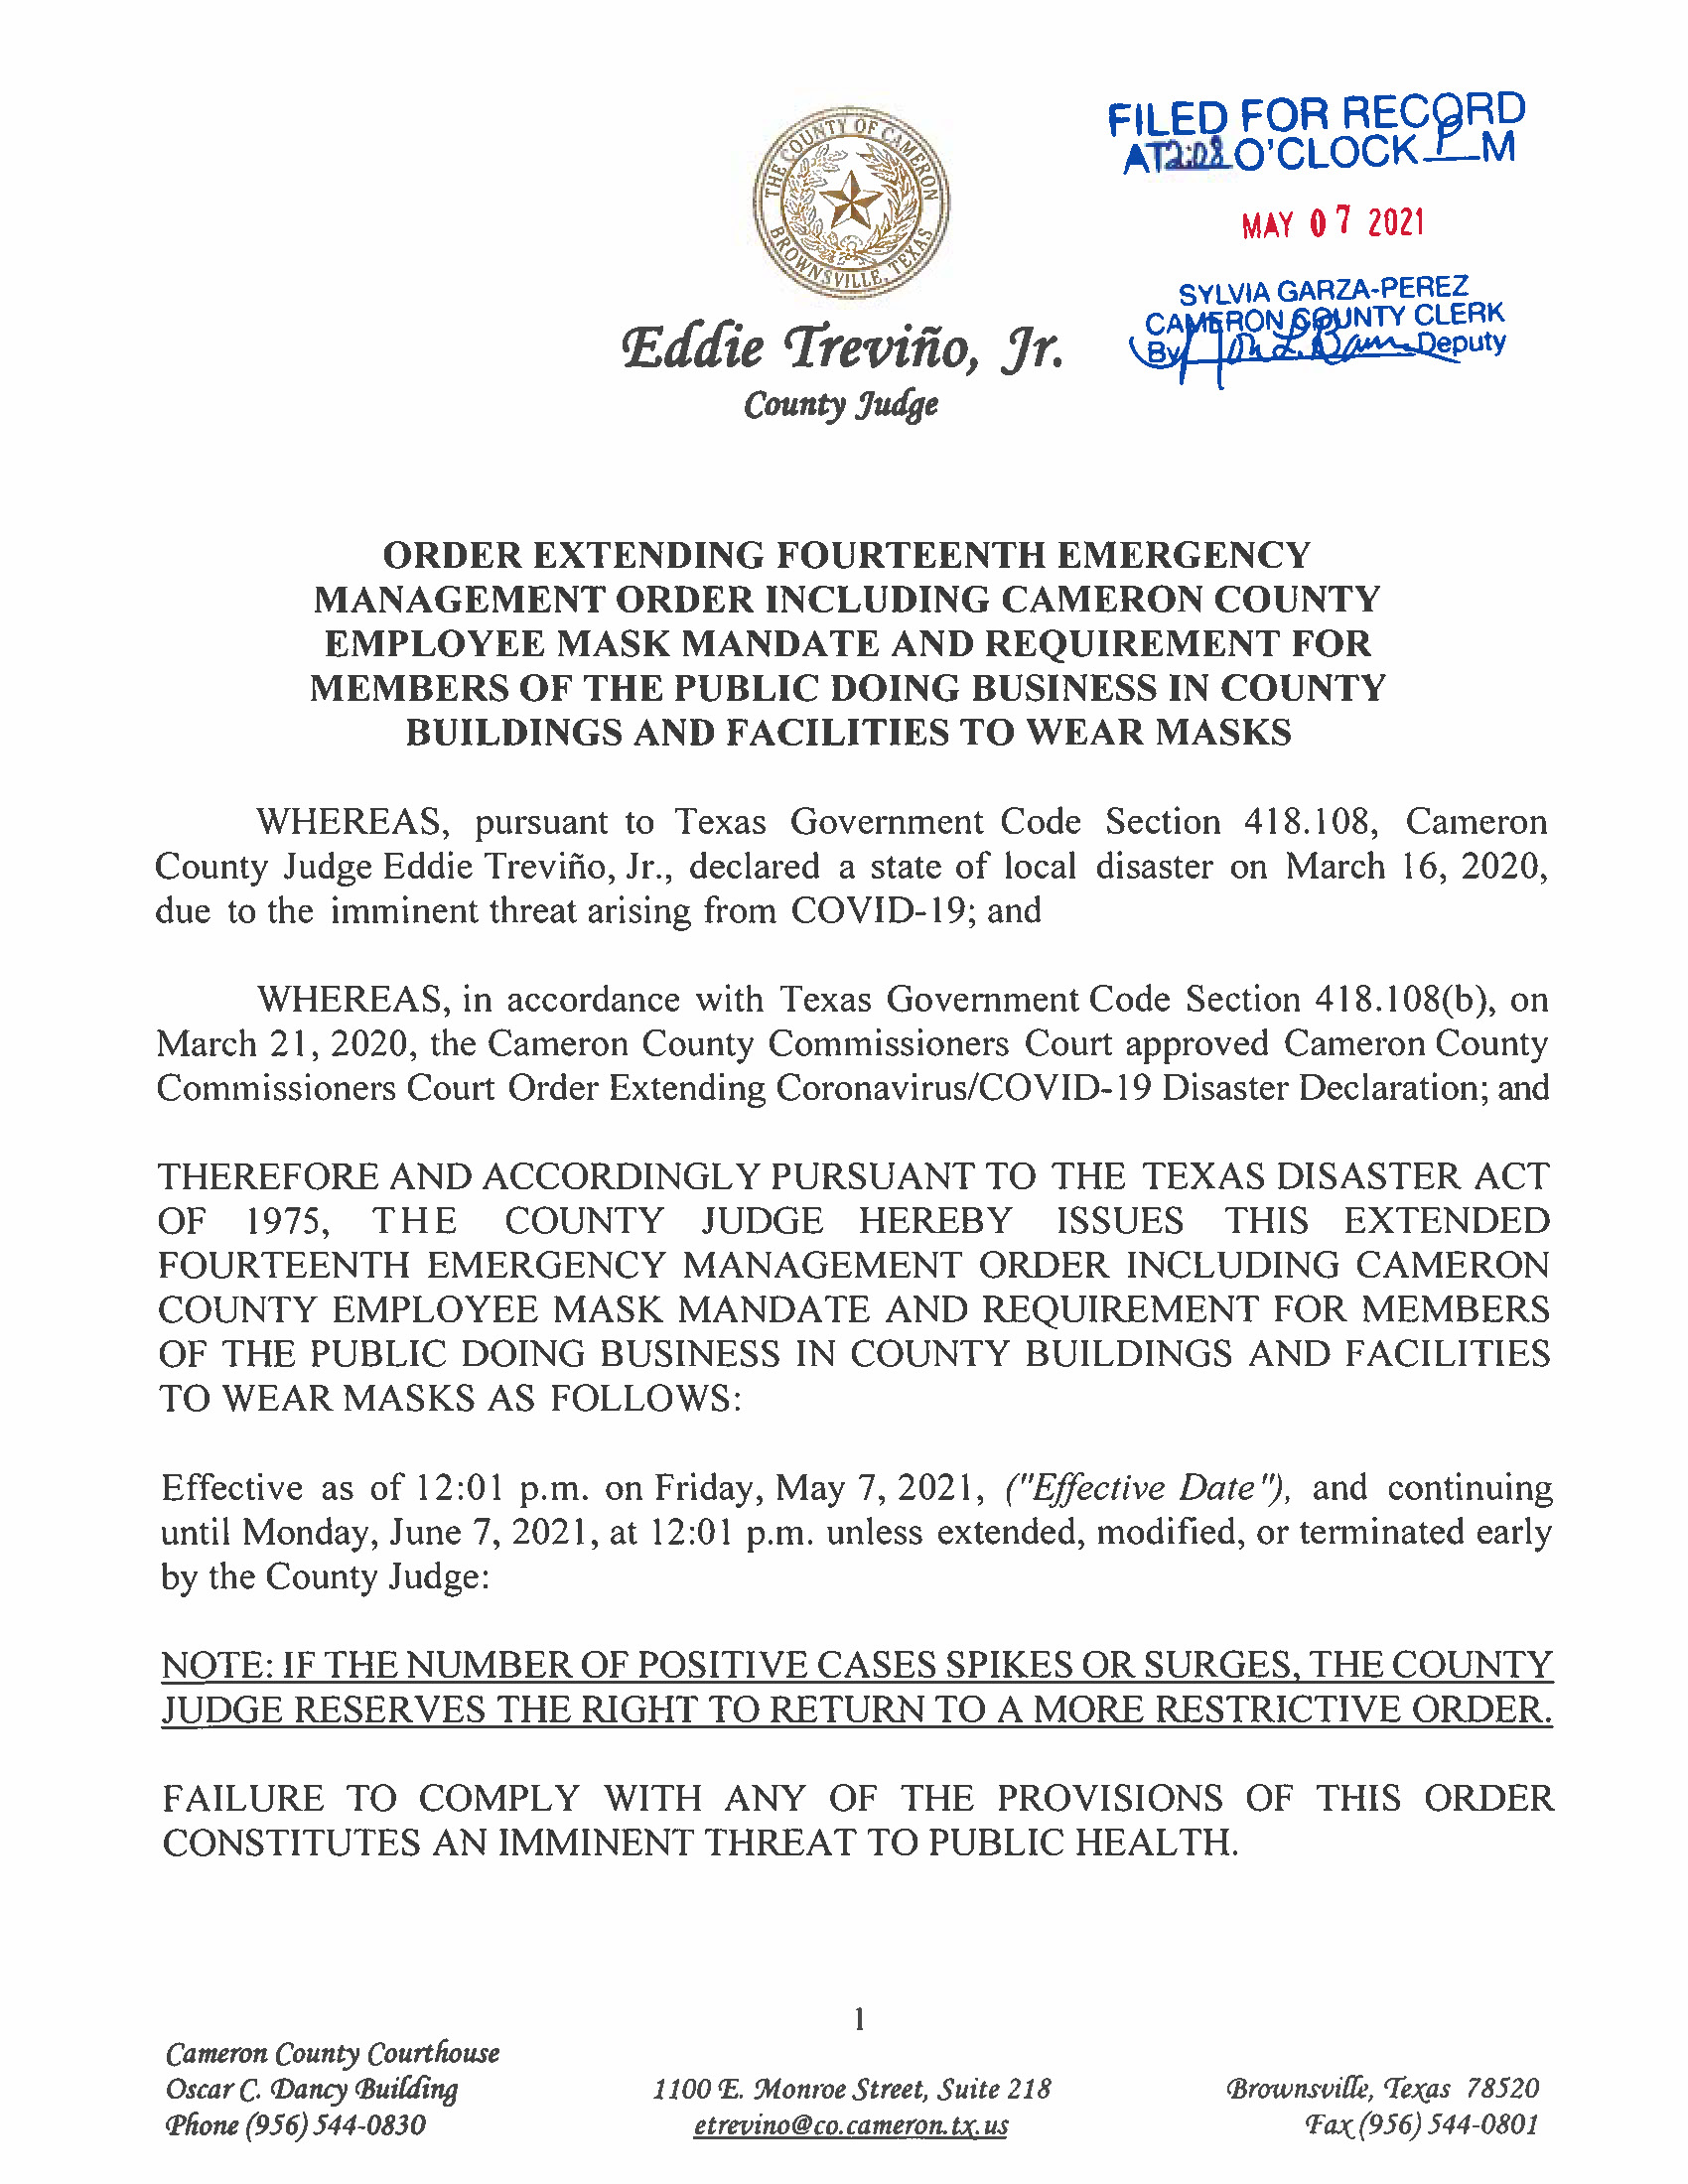 5.7.21 Extension Of 14th Emergency Order Page 1